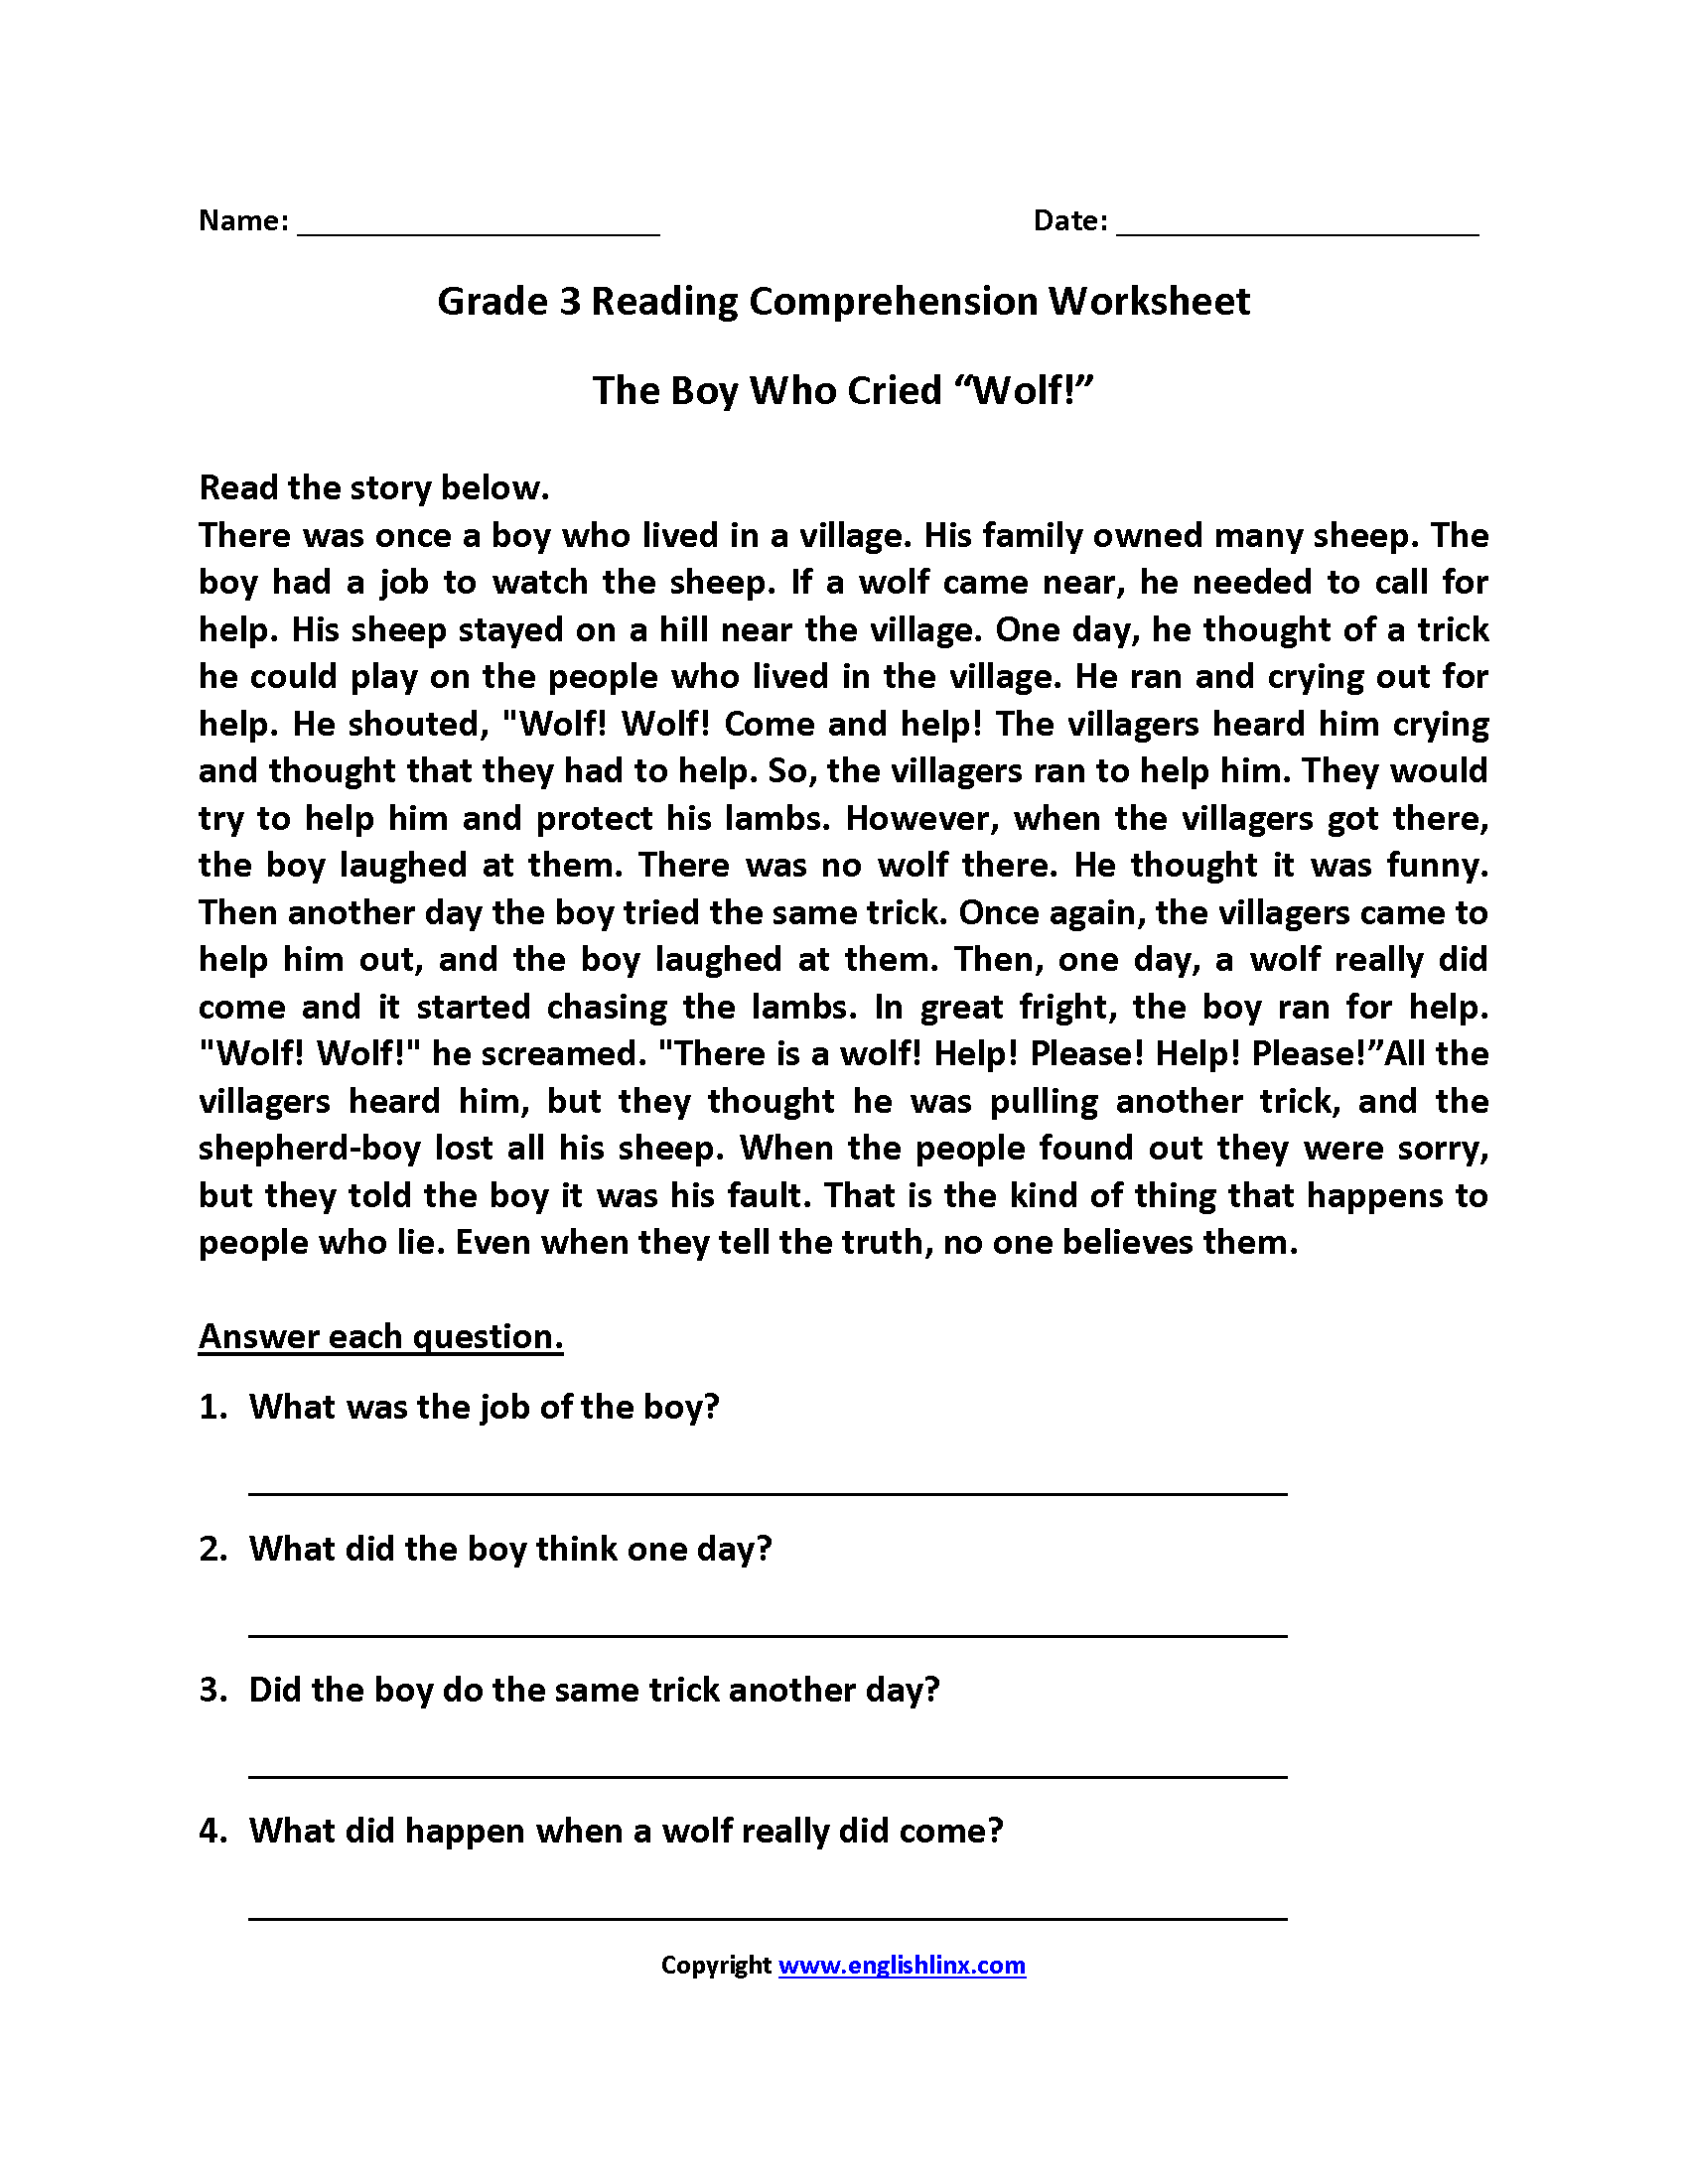 Worksheets 3rd Grade Comprehension Worksheets third grade reading worksheets comprehension pinterest worksheets